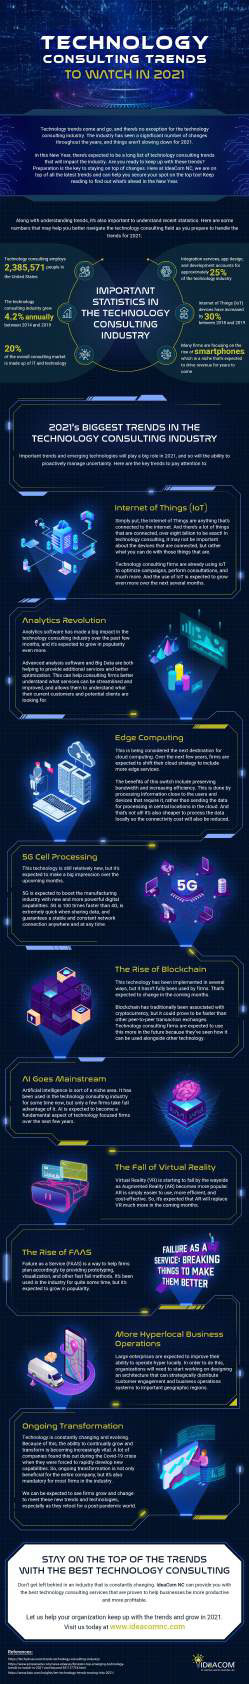 technology consulting trends to watch in 2021 infographic